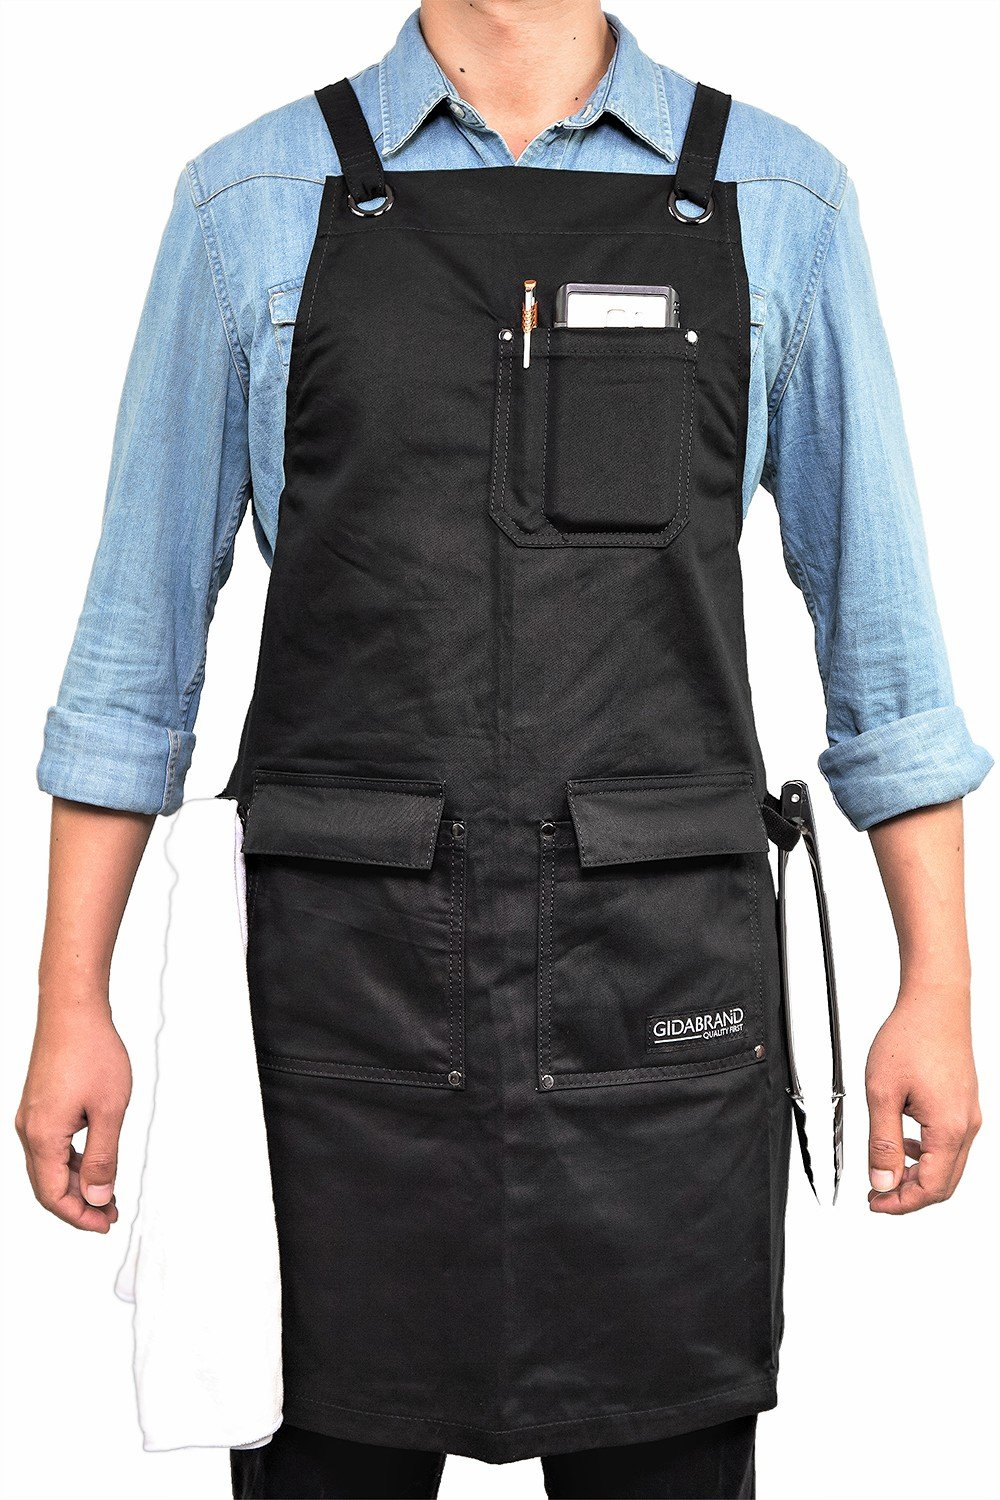 GIDABRAND Professional Grade Chef Kitchen Apron with Double Towel Loop – 10 oz Cotton for Cooking, BBQ and Grill – Men Women Design with 3 Pockets, Quick Release Buckle and Adjustable strap M to XXL by GIDABRAND